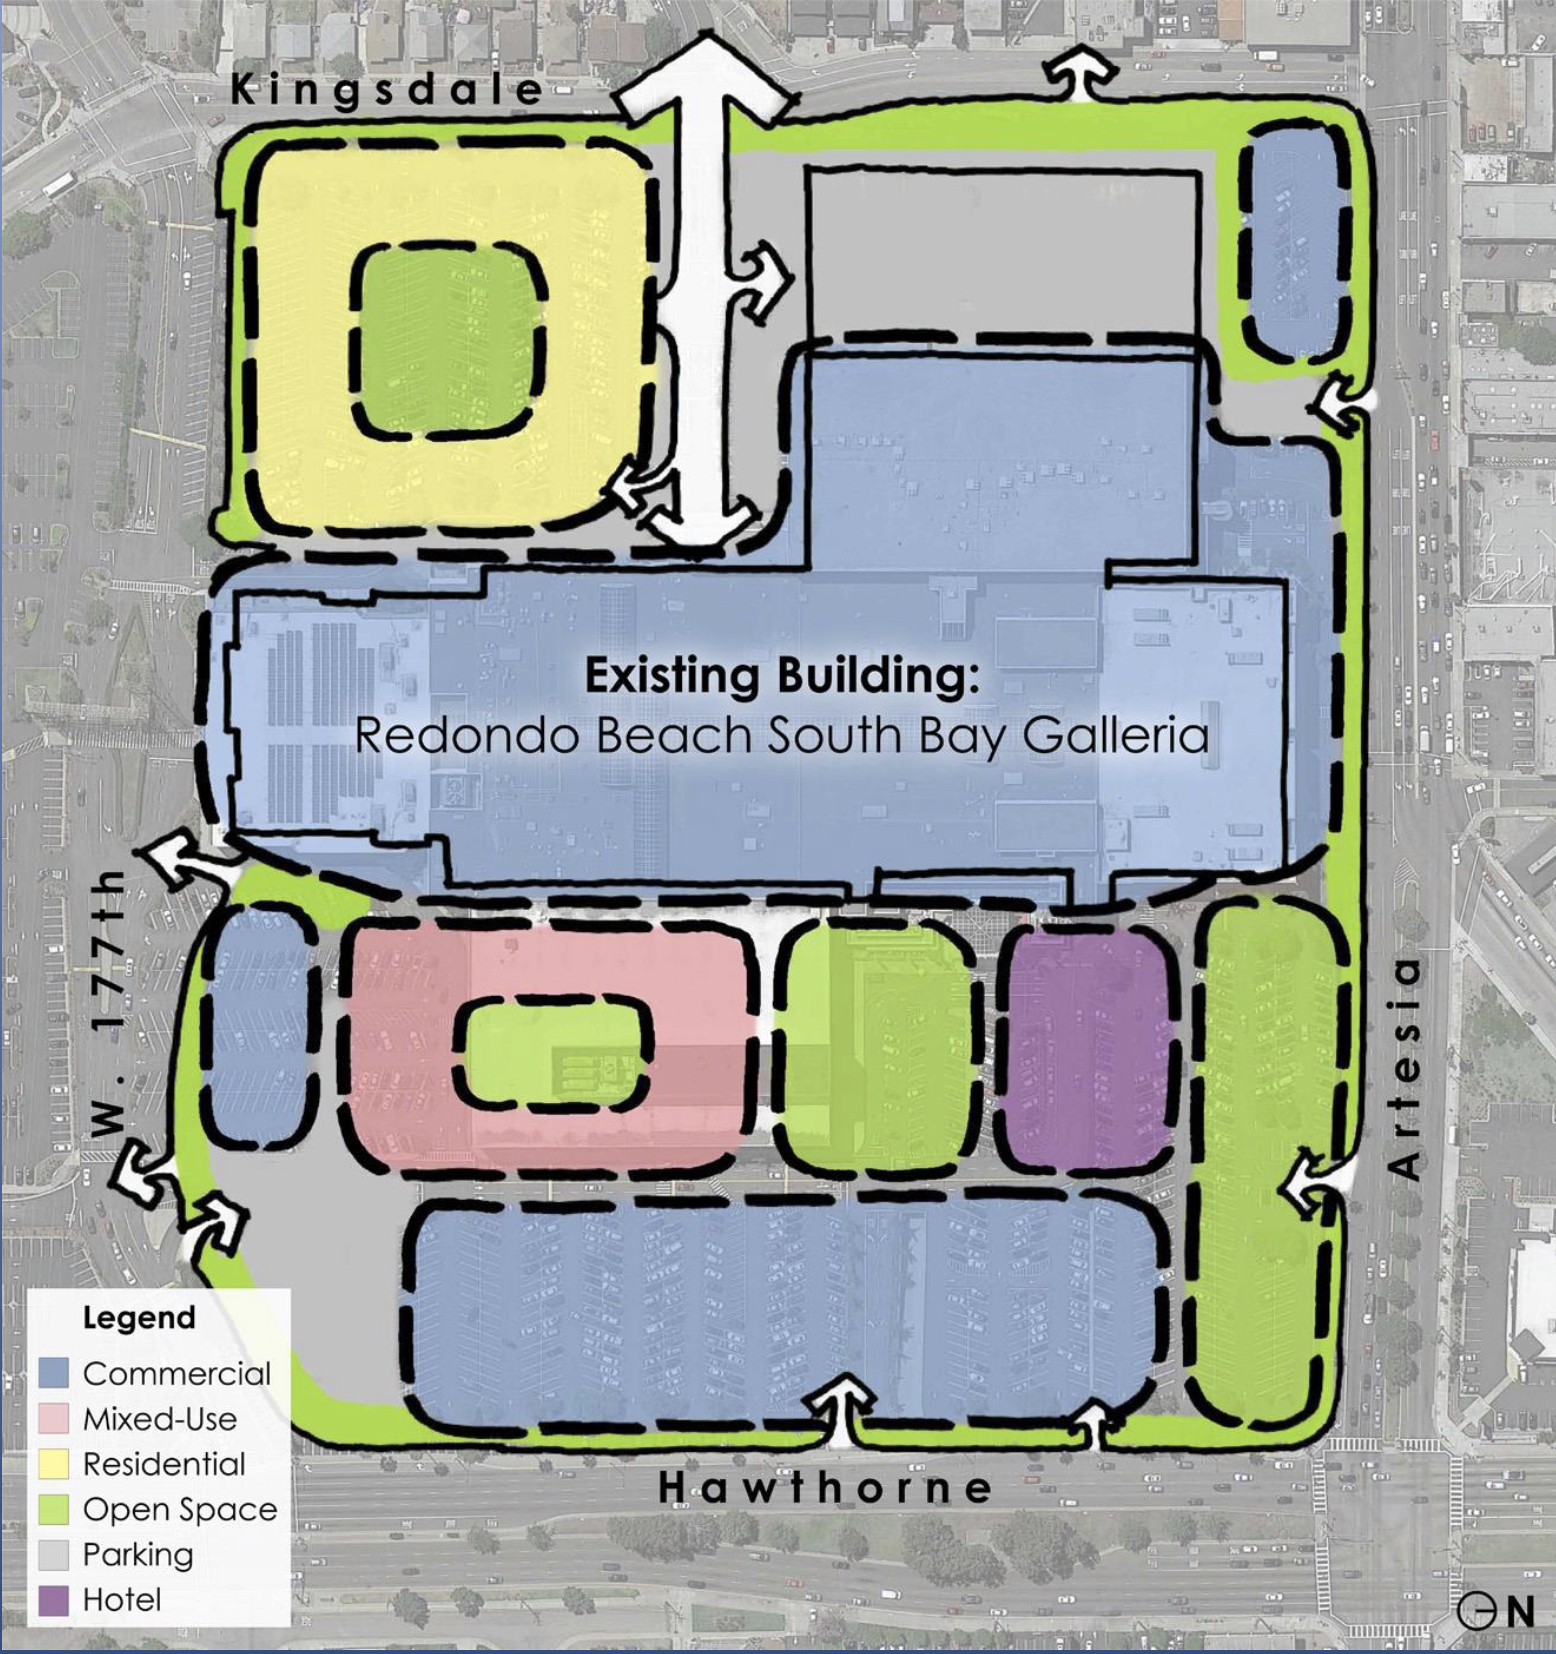 Proposed South Bay Galleria design includes housing, hotel